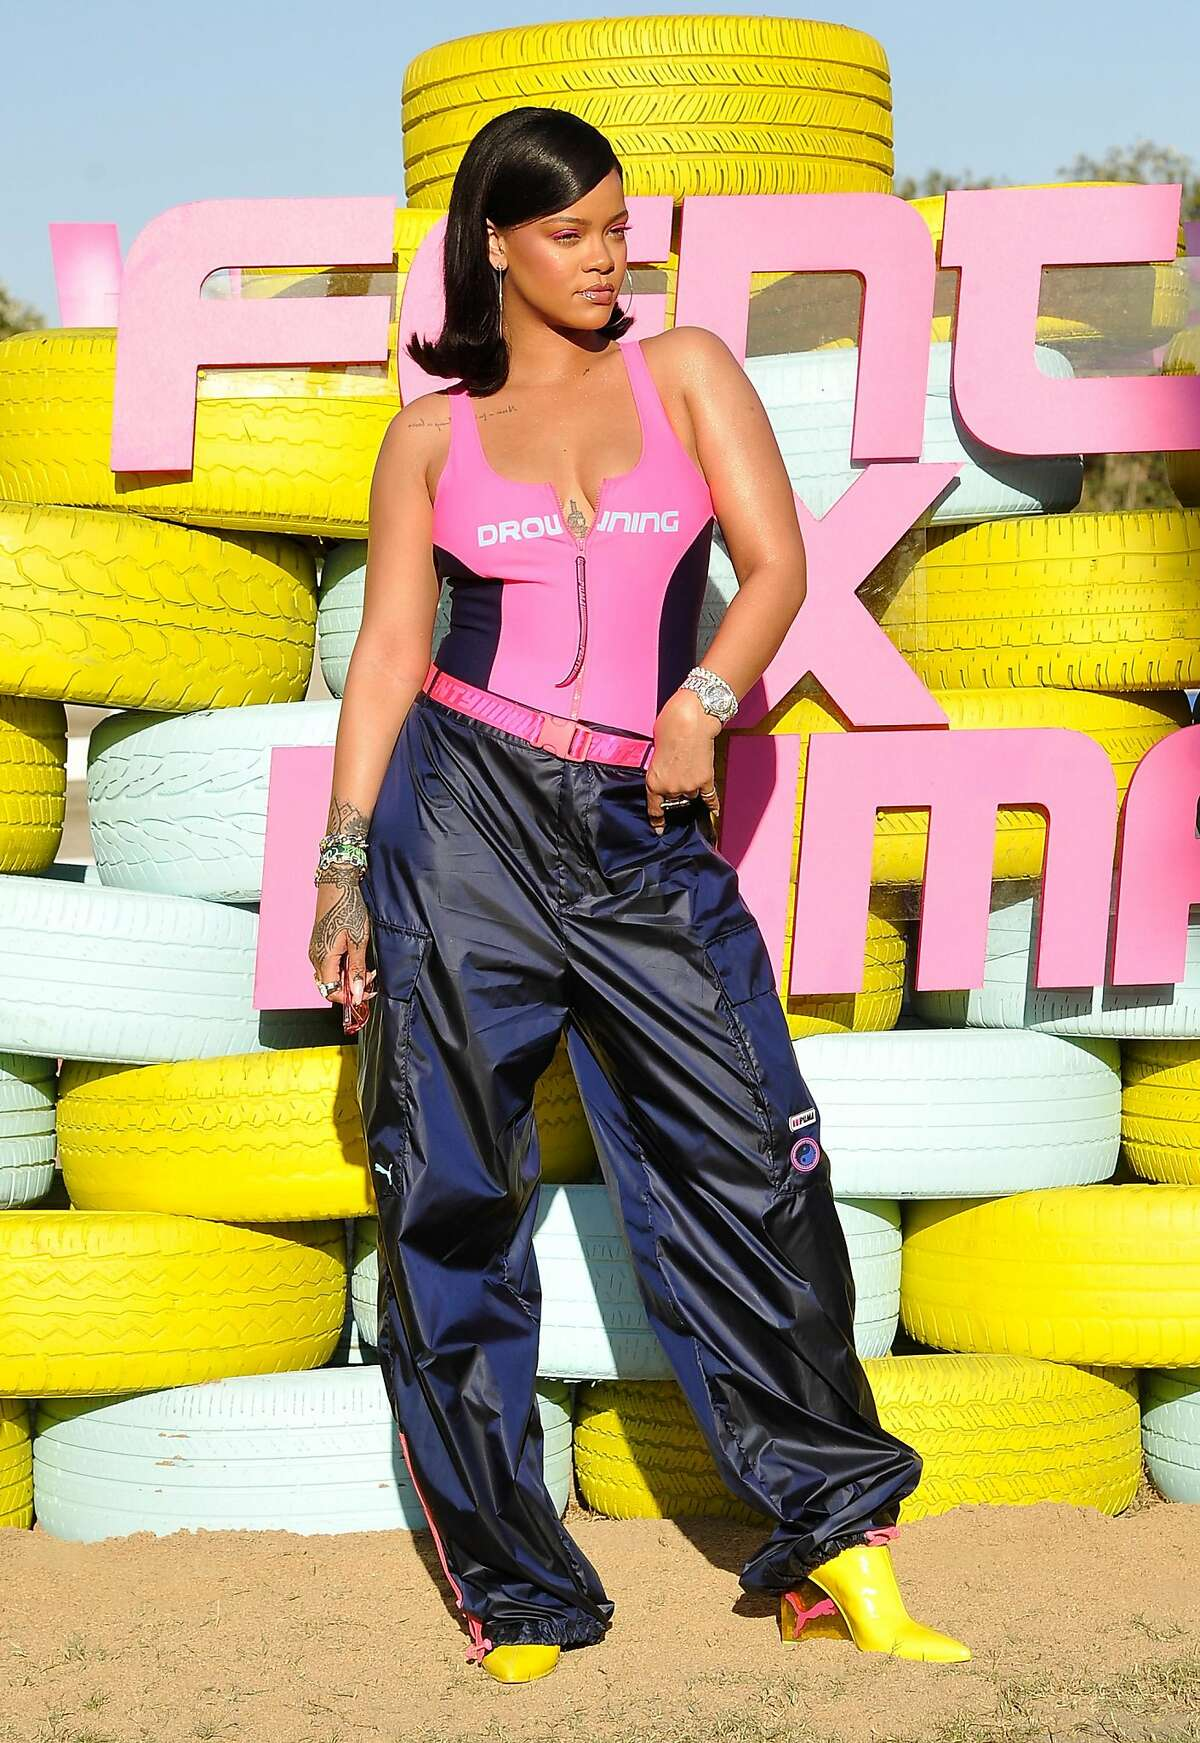 Rihanna attends the FentyXPUMA Drippin event launching the Summer '18 collection at Coachella on April 14, 2018 in Thermal, California.